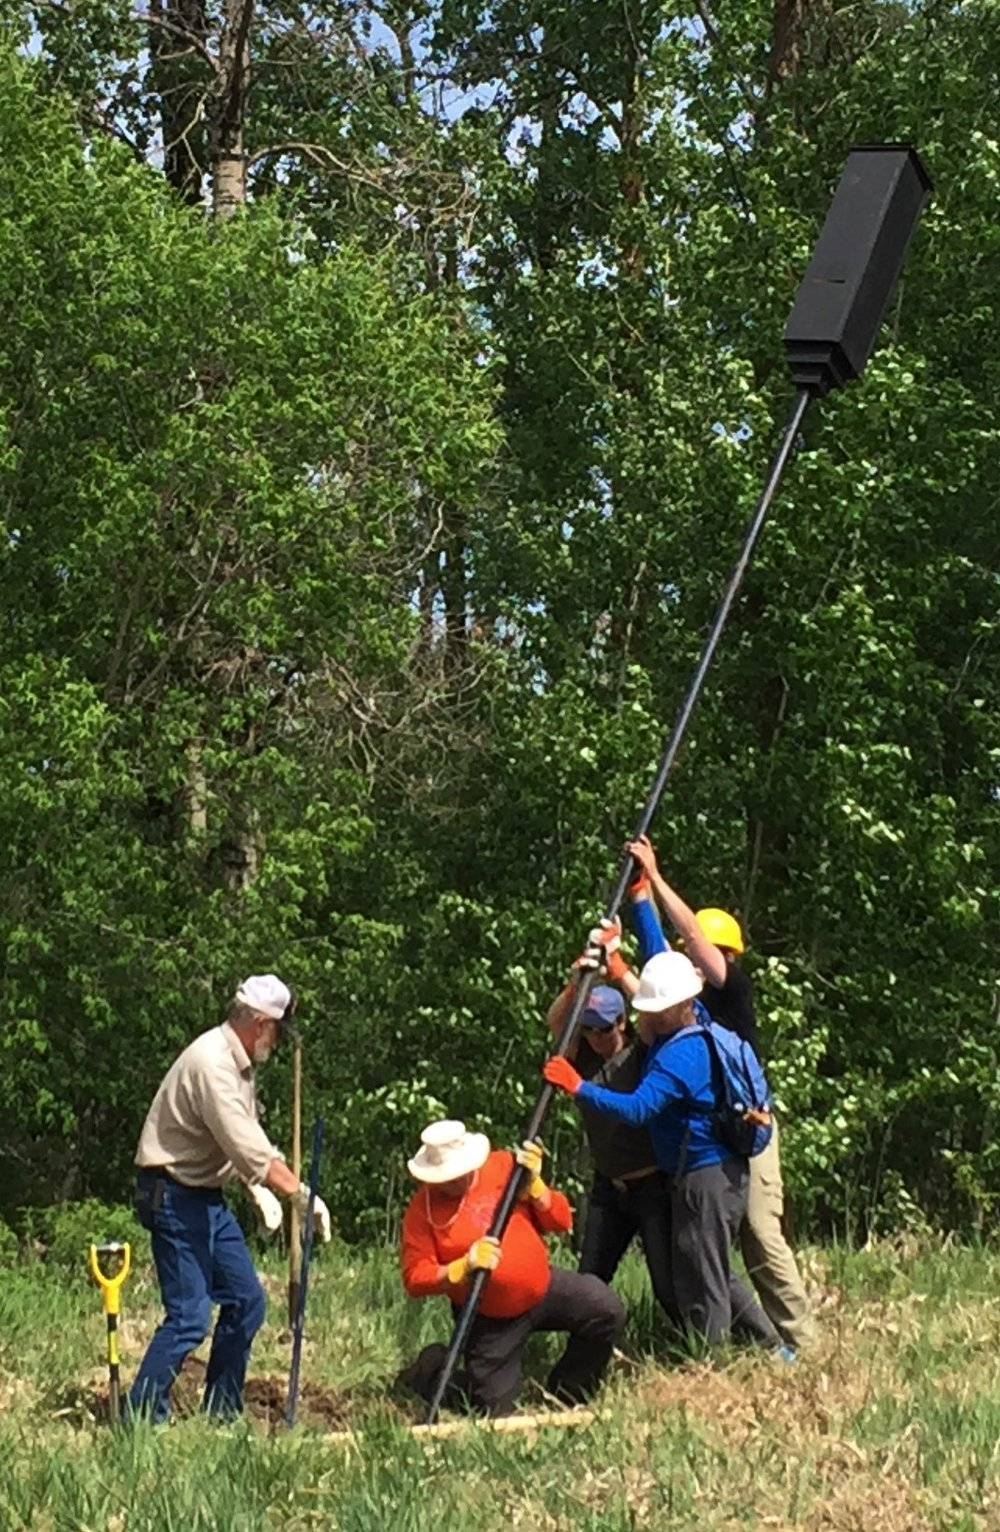 Volunteers installing our very first Rocket Bat Box at Boisvert's GreenWoods!